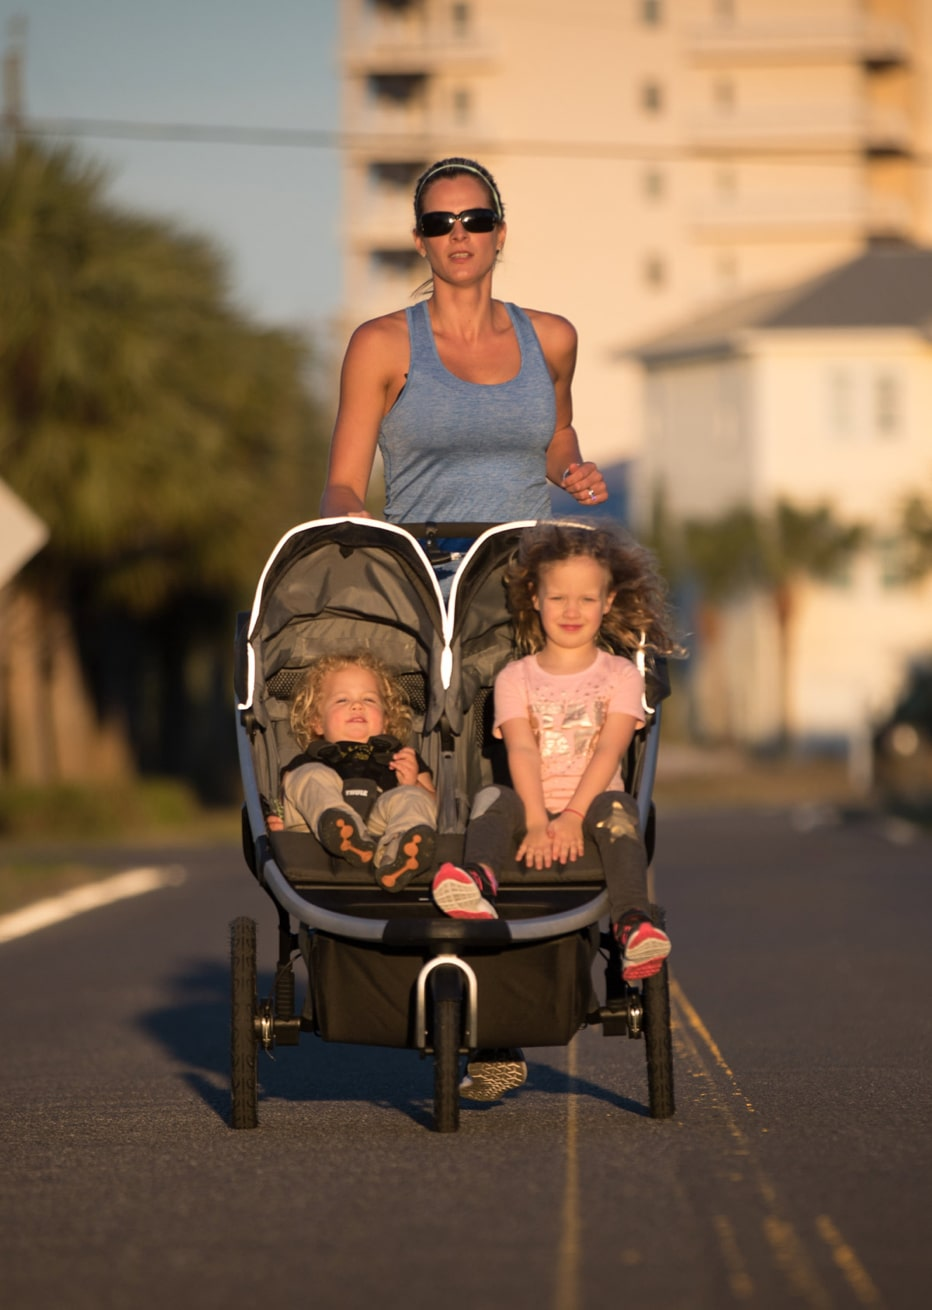 Magda running with kids in stroller